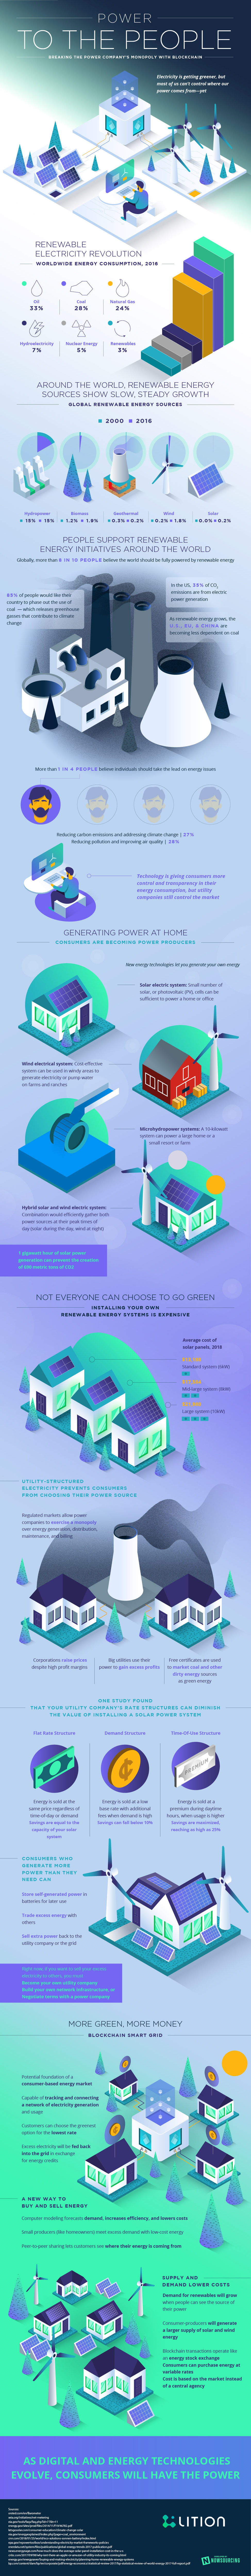 May the Power Be with You: Blockchain and Renewable Energy Generation – Infographic